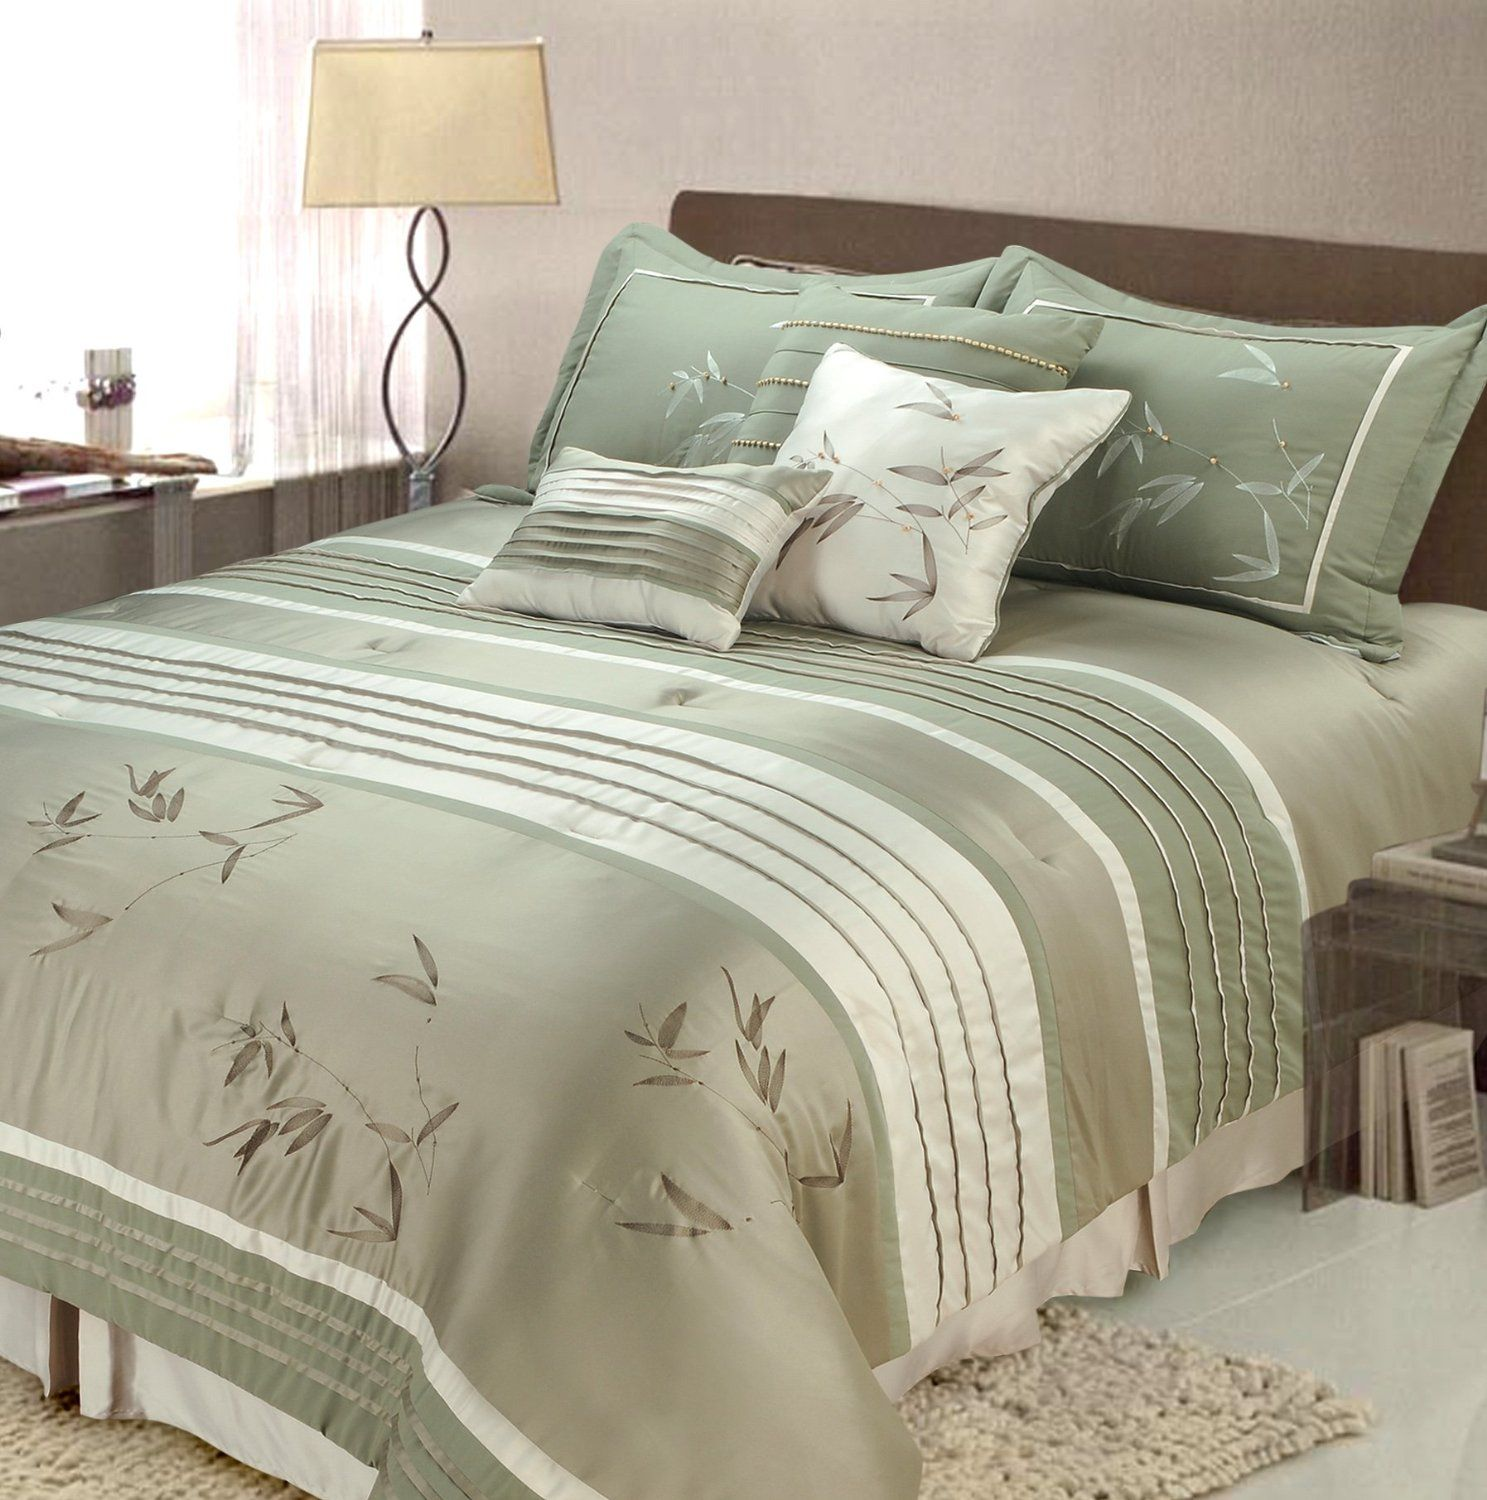 Green bedding set - Bedroom Ideas For Green Bedding Comforter Sets Bedroom Decor Ideas And Green Bedroom Comforter Sets